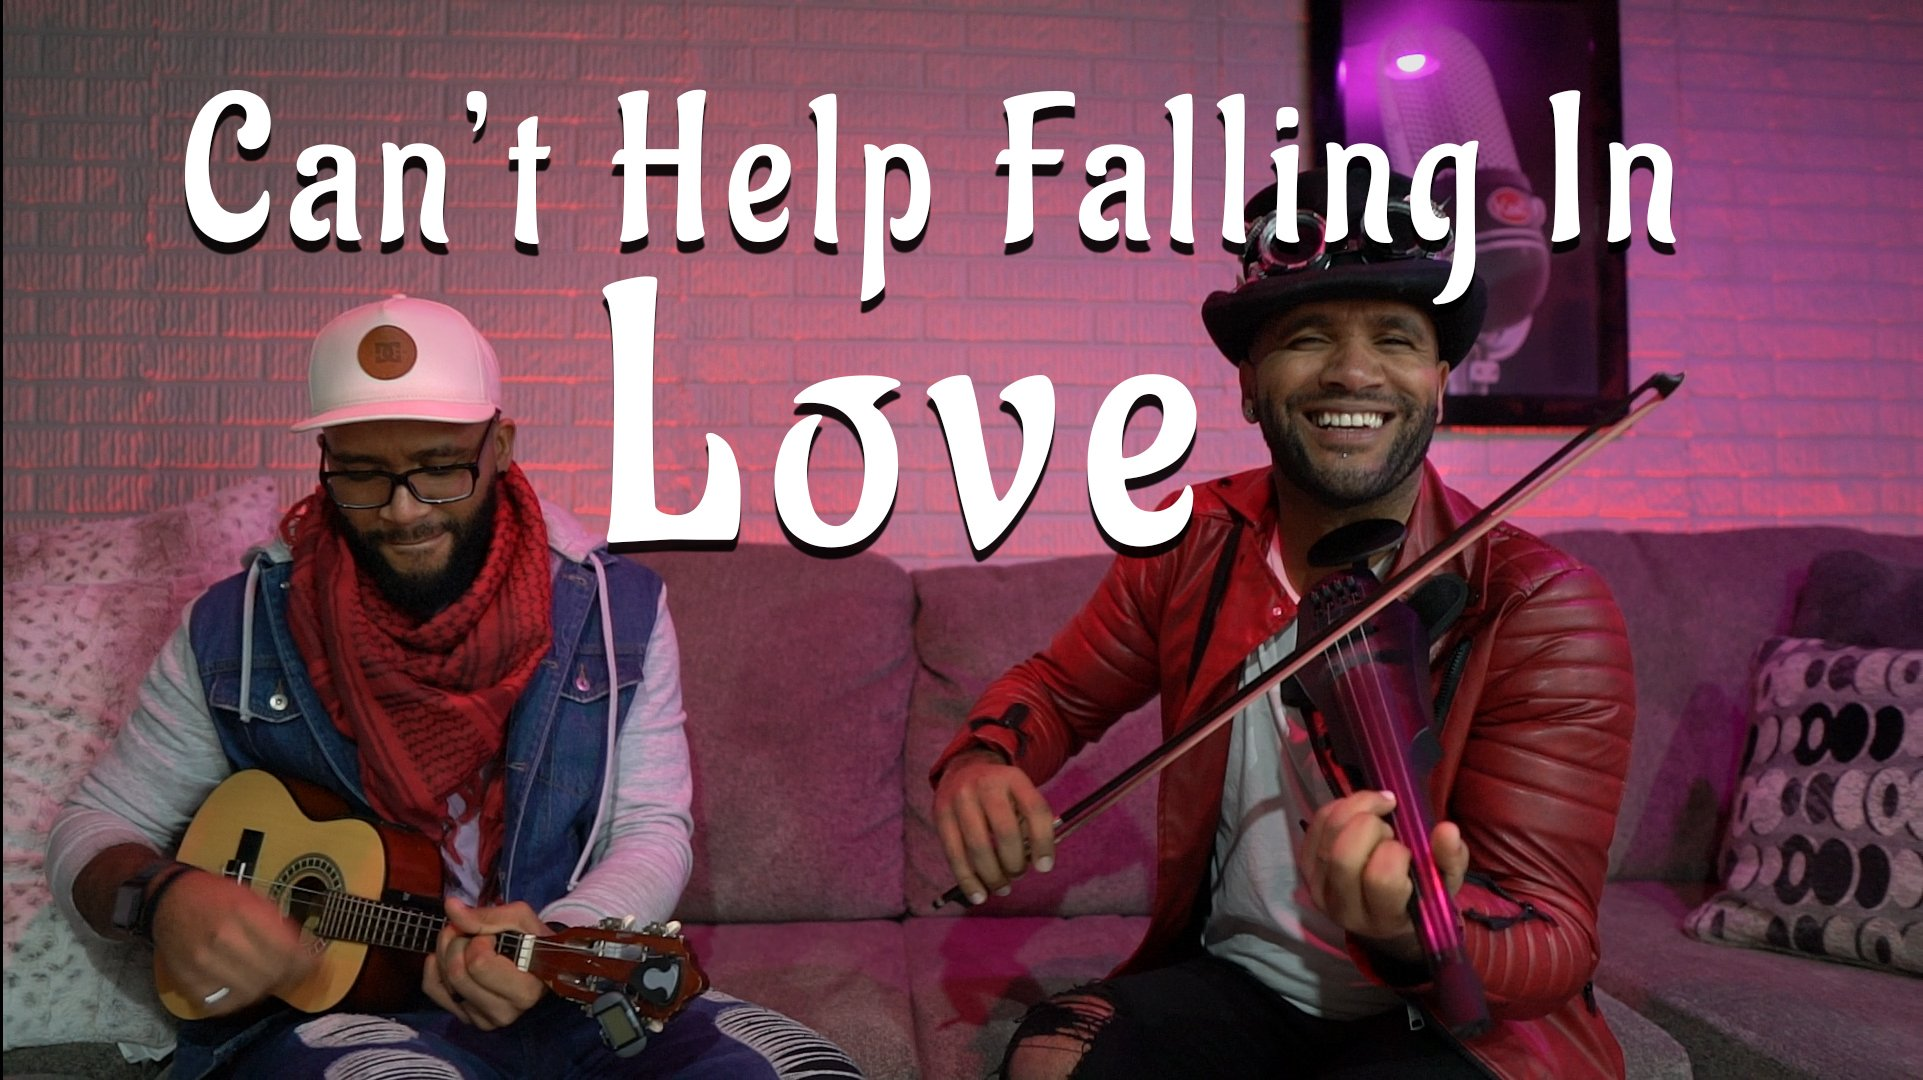 Cant help falling in love violin ukulele cover